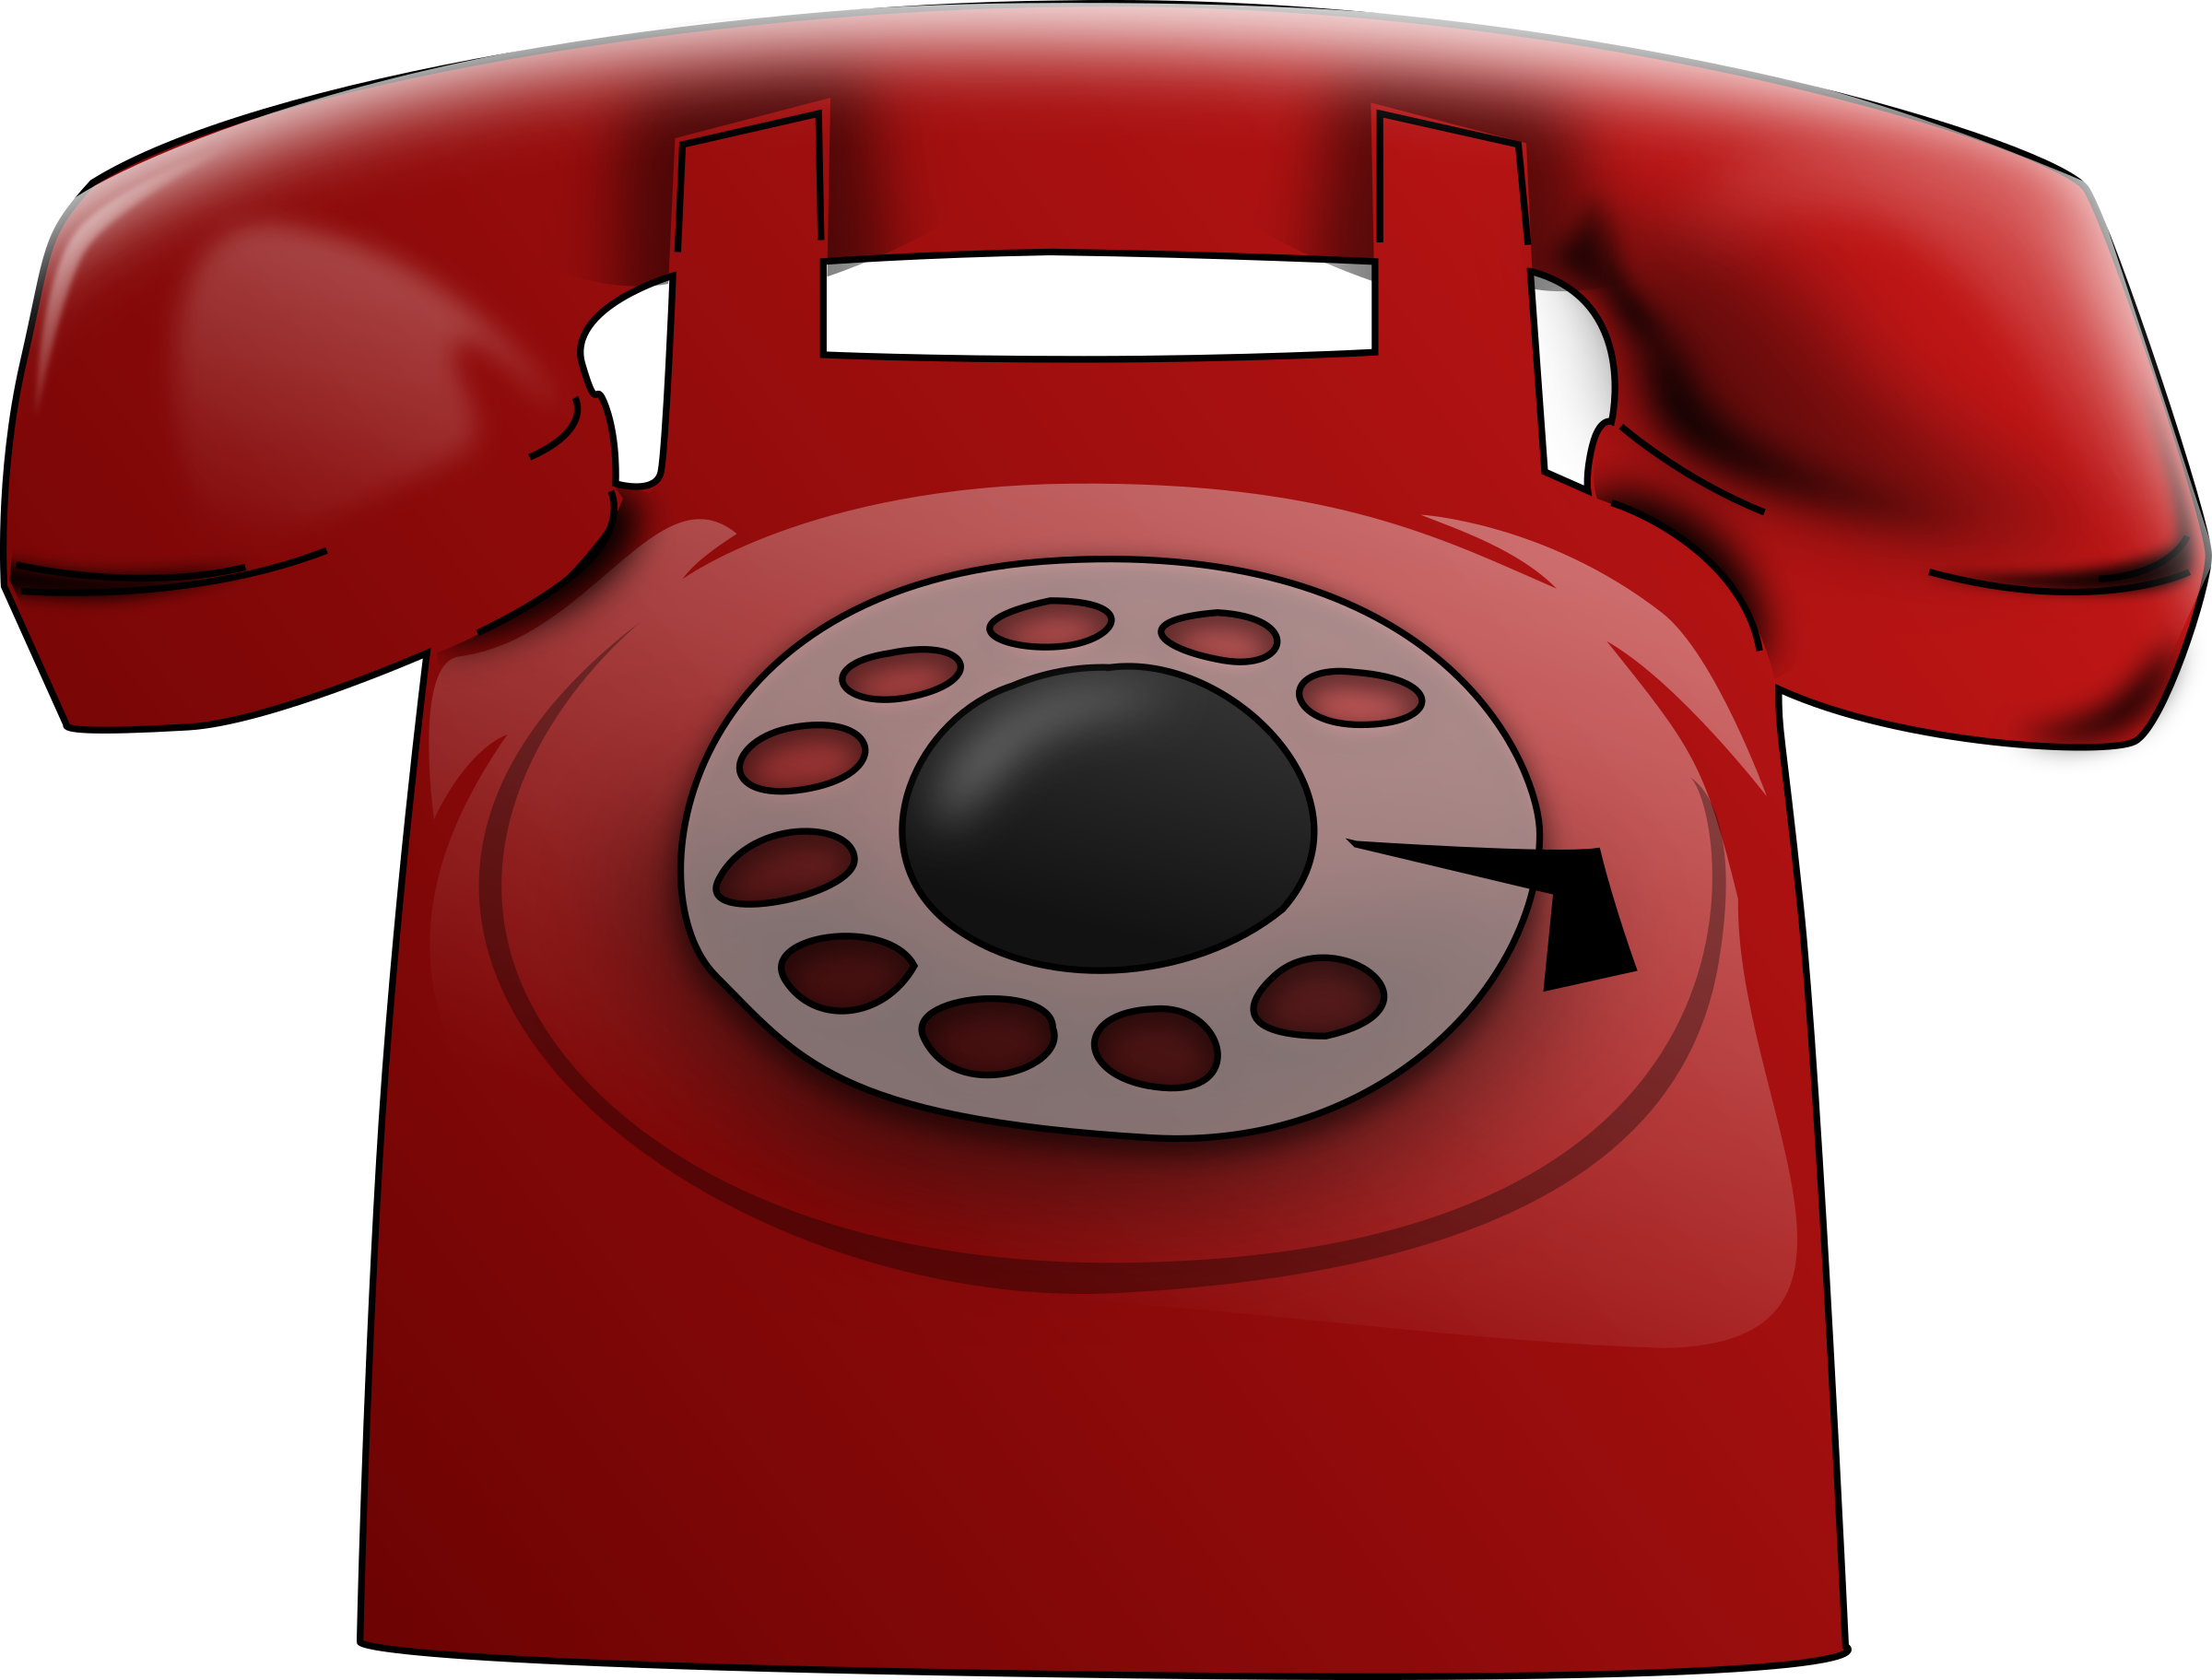 Telephone clipart red telephone. Free phone cliparts download